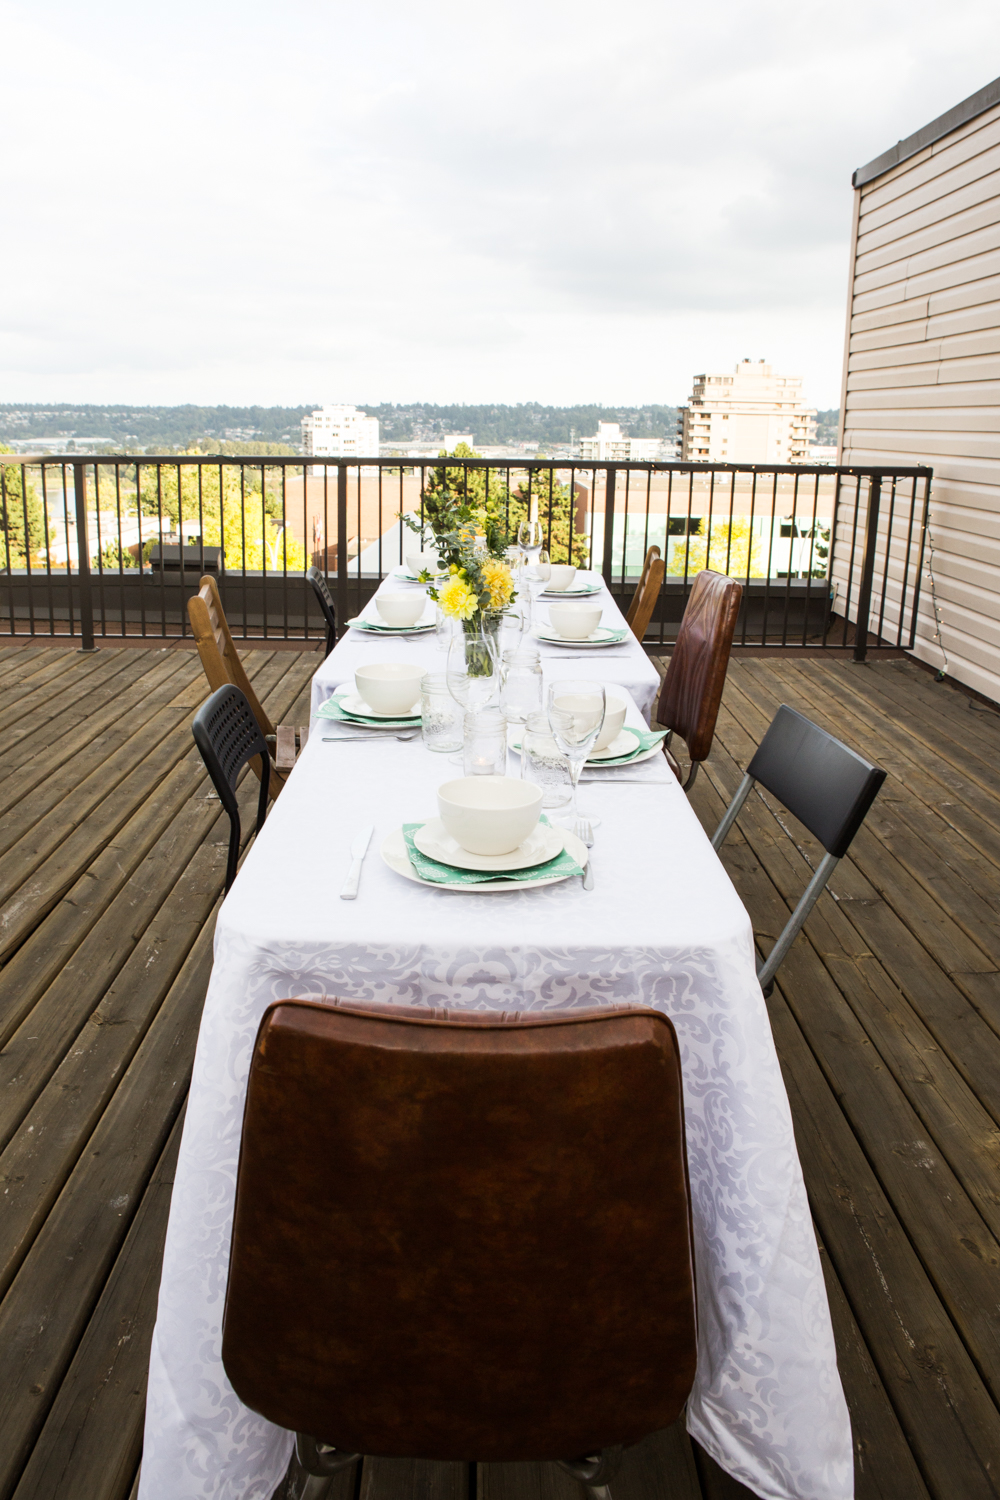 New-Westminster-Rooftop-Dinner-Party_-Bolandia-1906.jpg